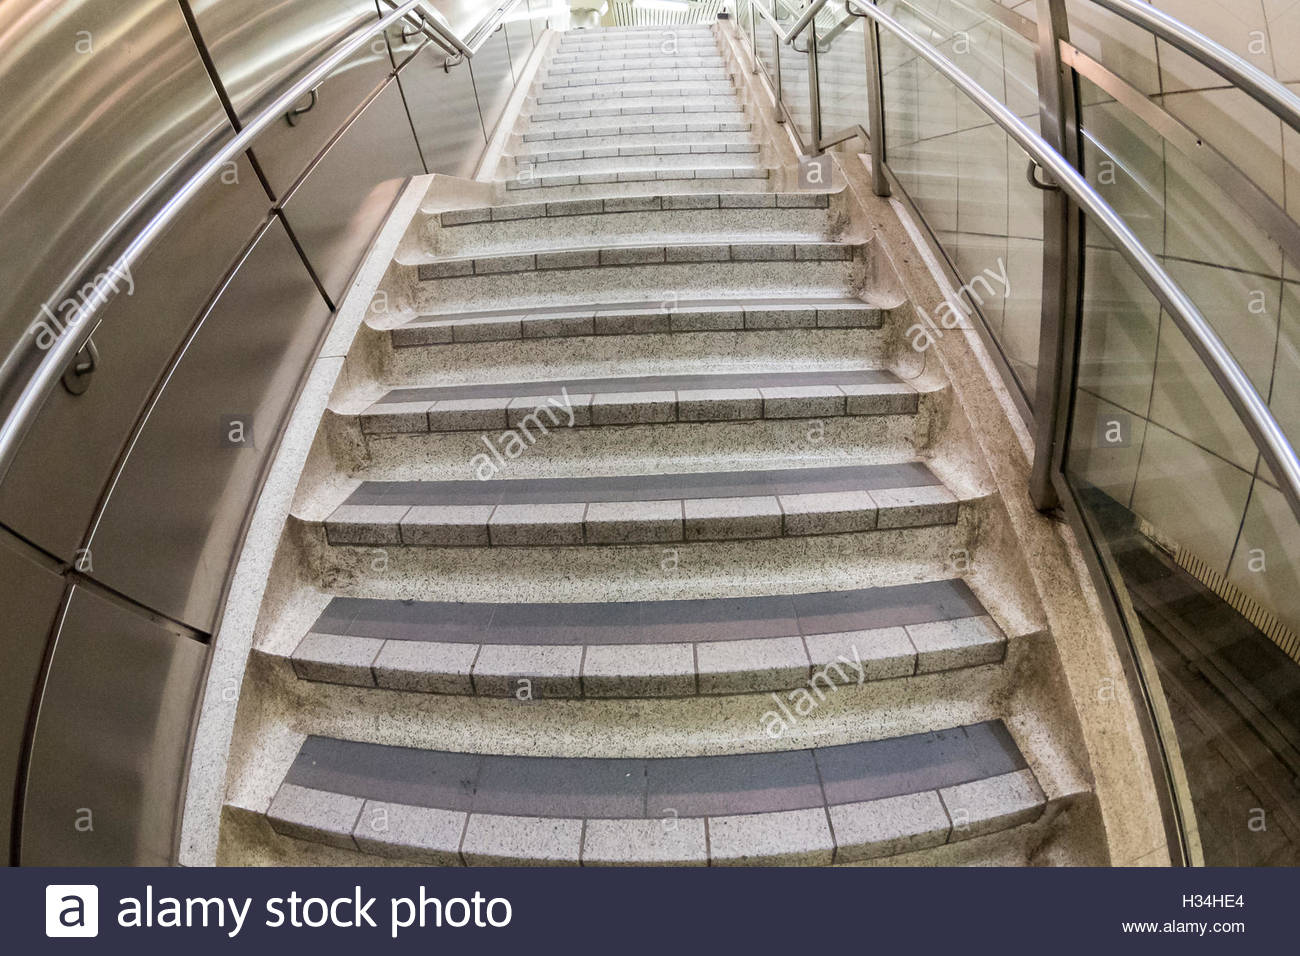 Distorted flight of stairs in a subway station - Stock Image